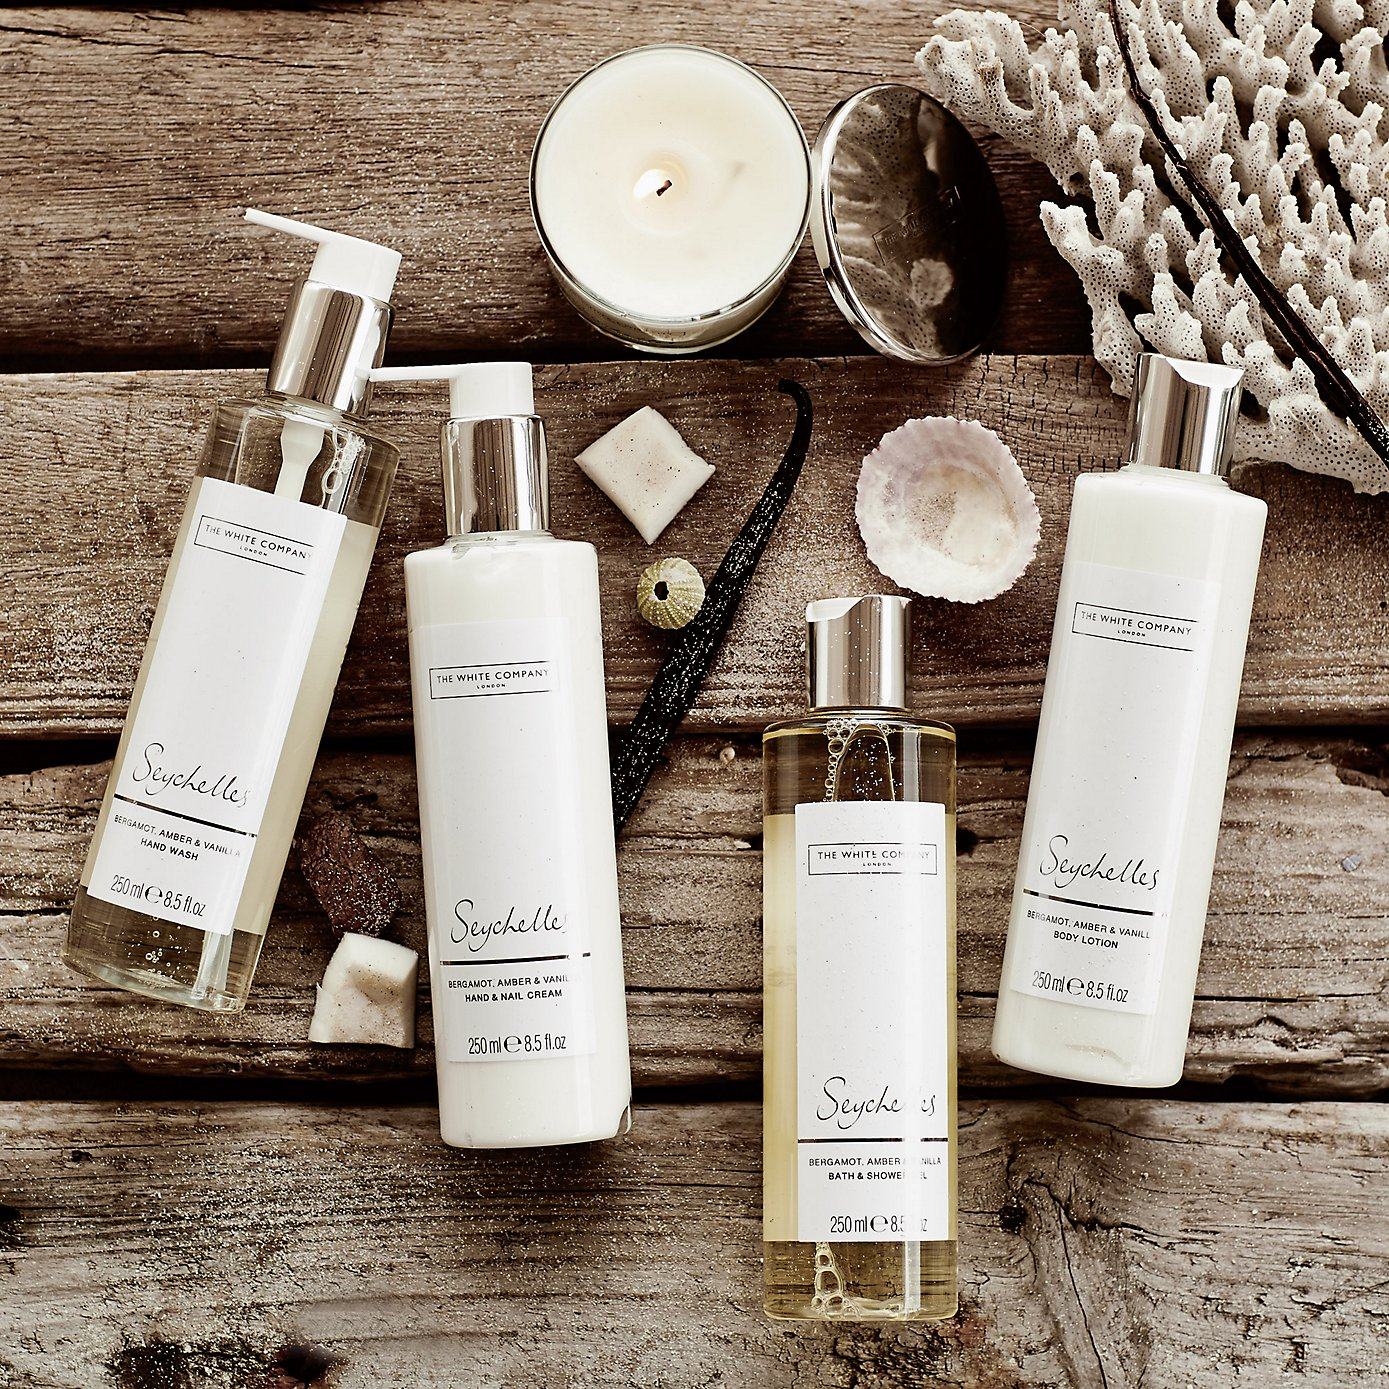 mamasVIB   V. I. BABYMAMAS: How to create a #SPATHROOM at home with The White Company   the white company   collective   blogger s  beauty   spathroom } spa at home   bathroom   fluffy towels   how to spa at home   spa treats   bathroom chic   white co   ribs   waffle slippers   luxury bathing   seychelles bath and body  candles   the white co   spa   bathroom   mamasVIb   blogger   spa time   treatments